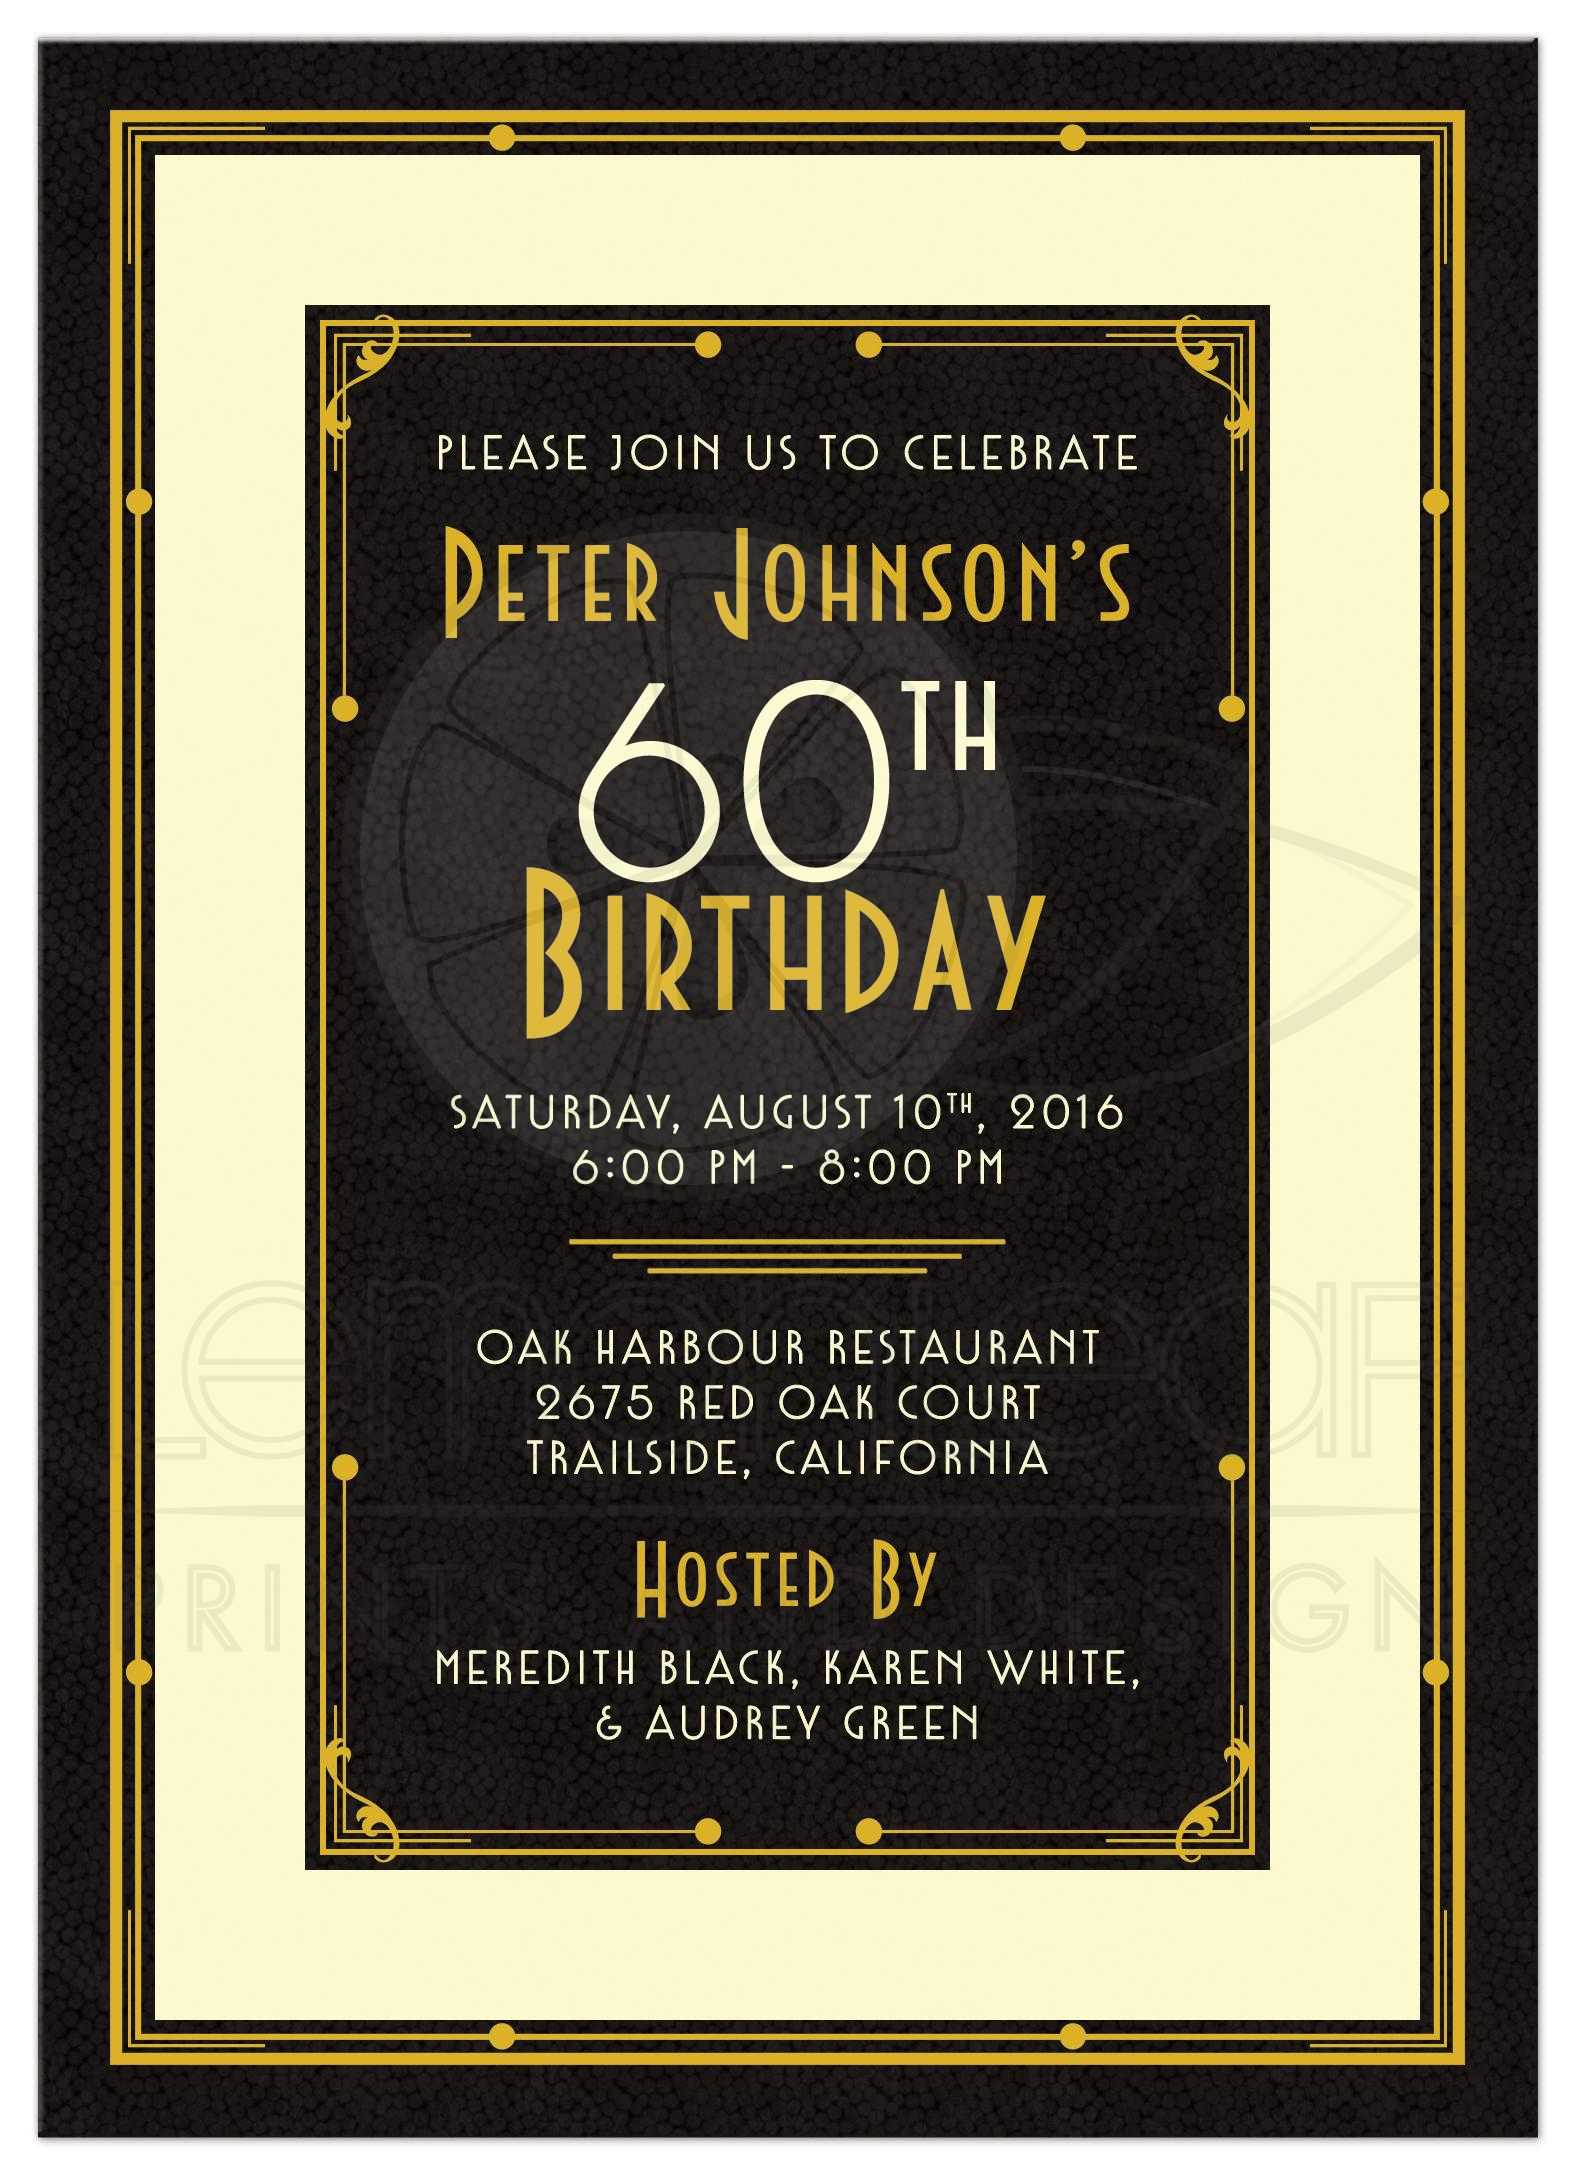 Elegant black, gold, and ivory art deco man's 60th birthday invitation ...